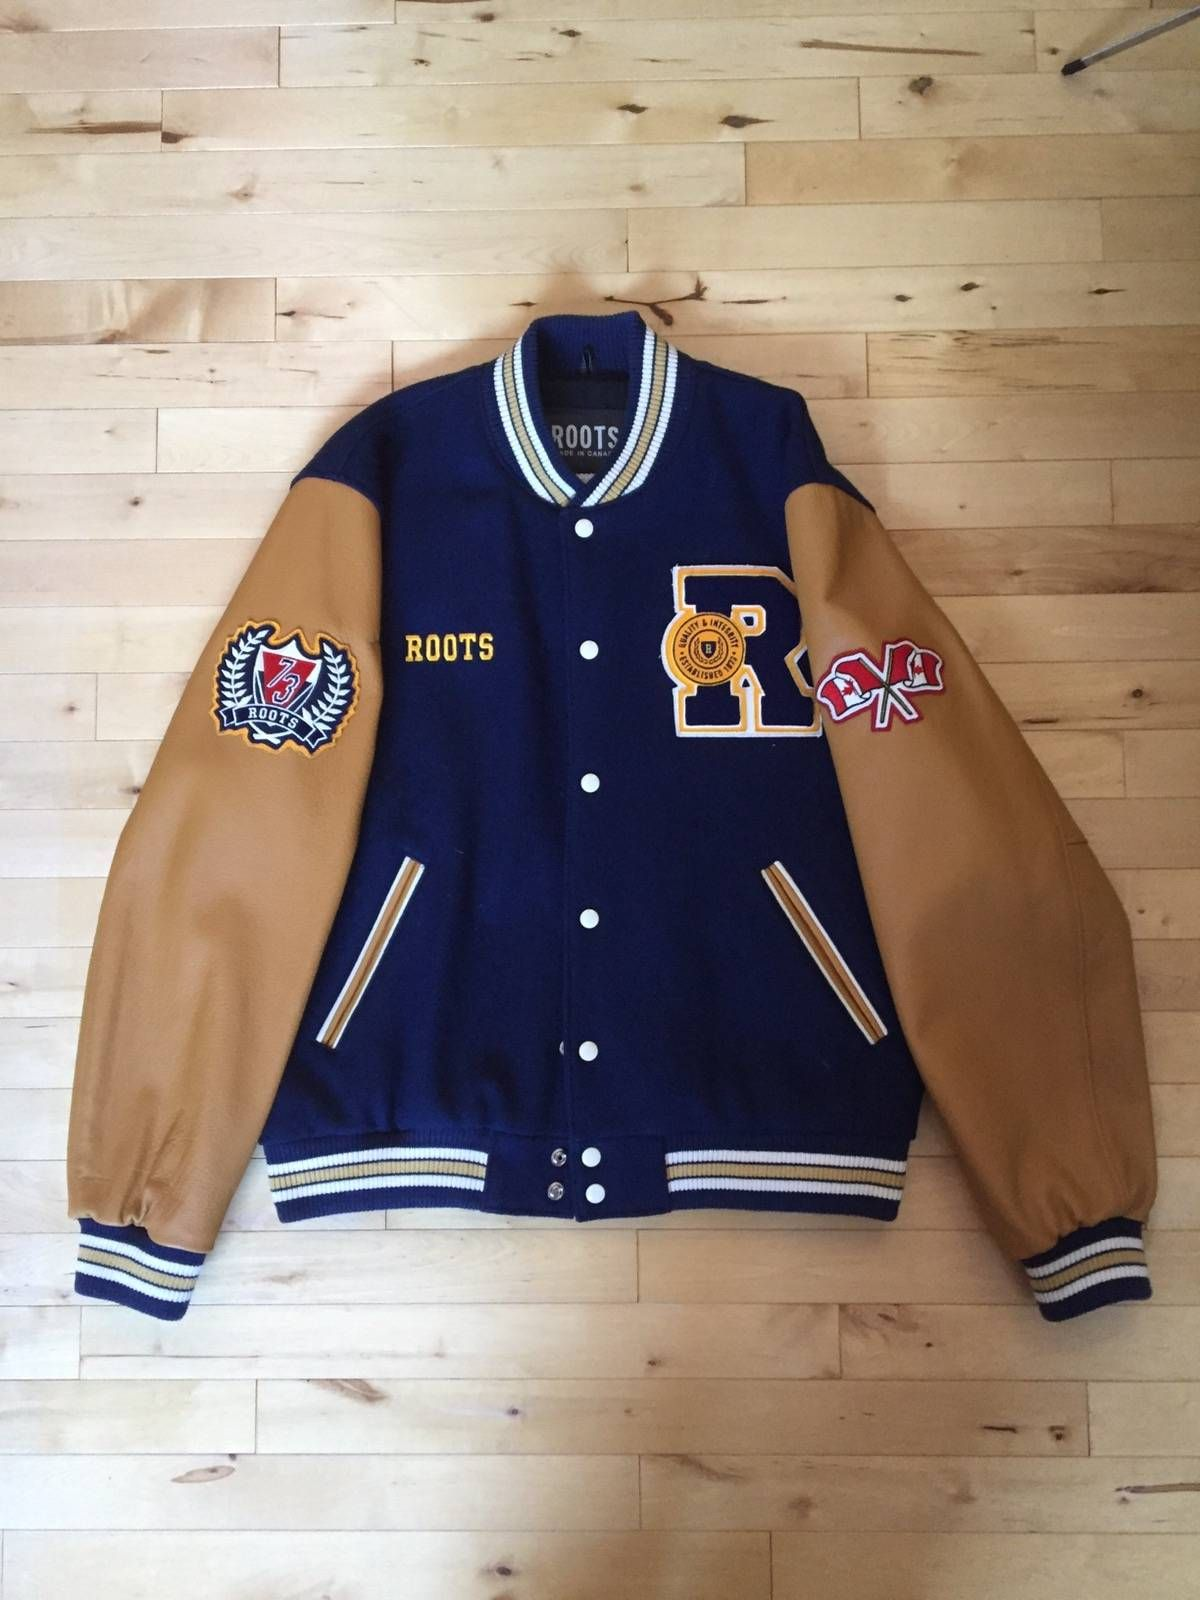 Searching For Rare Ds Vintage Roots Varsity Bomber Jacket We Ve Got Roots Outerwear Starting At 324 And Plenty Of Oth Jackets Varsity Bomber Jacket Outerwear [ 1600 x 1200 Pixel ]